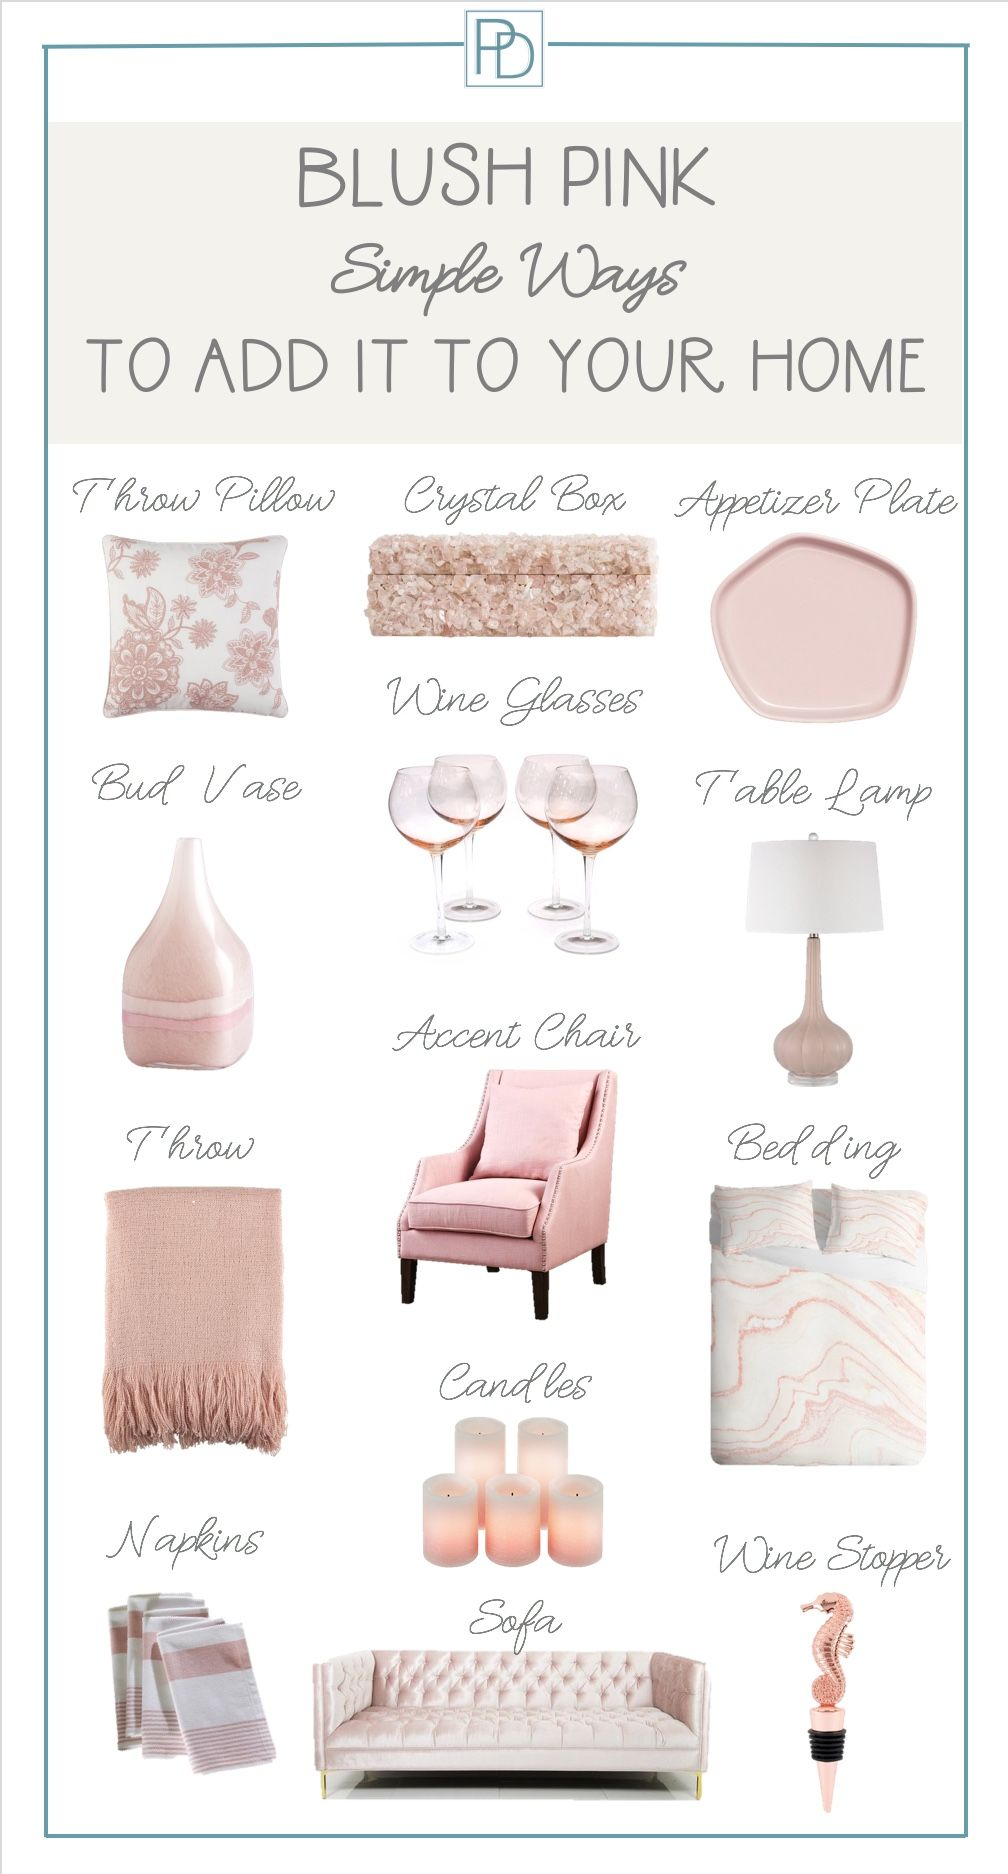 Blush Pink Is A New Home Decor Neutral Funky Home Decor Pink